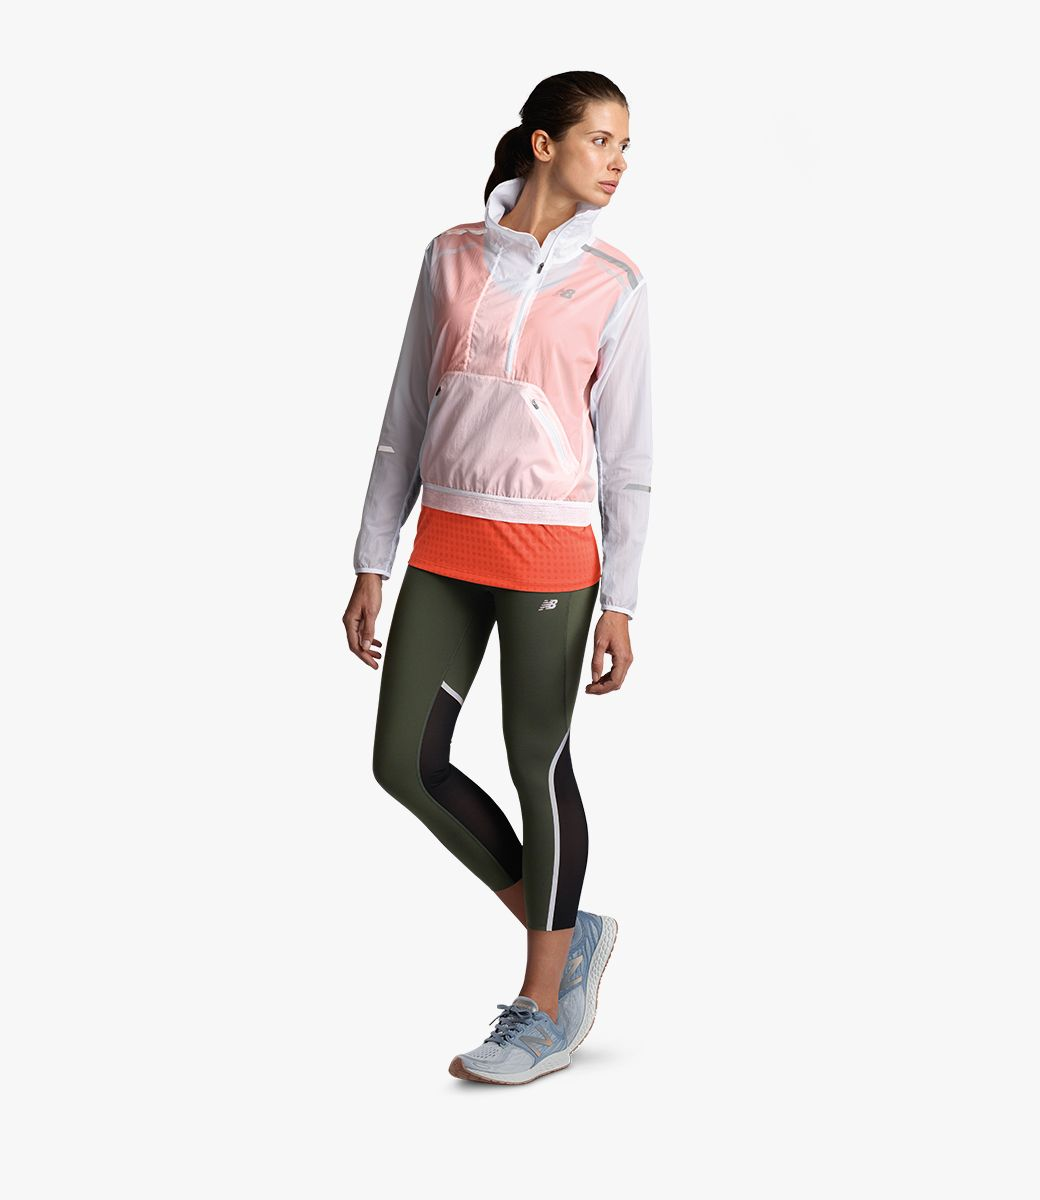 New Balance Womens March Fresh Foam Zante and D2D Run,